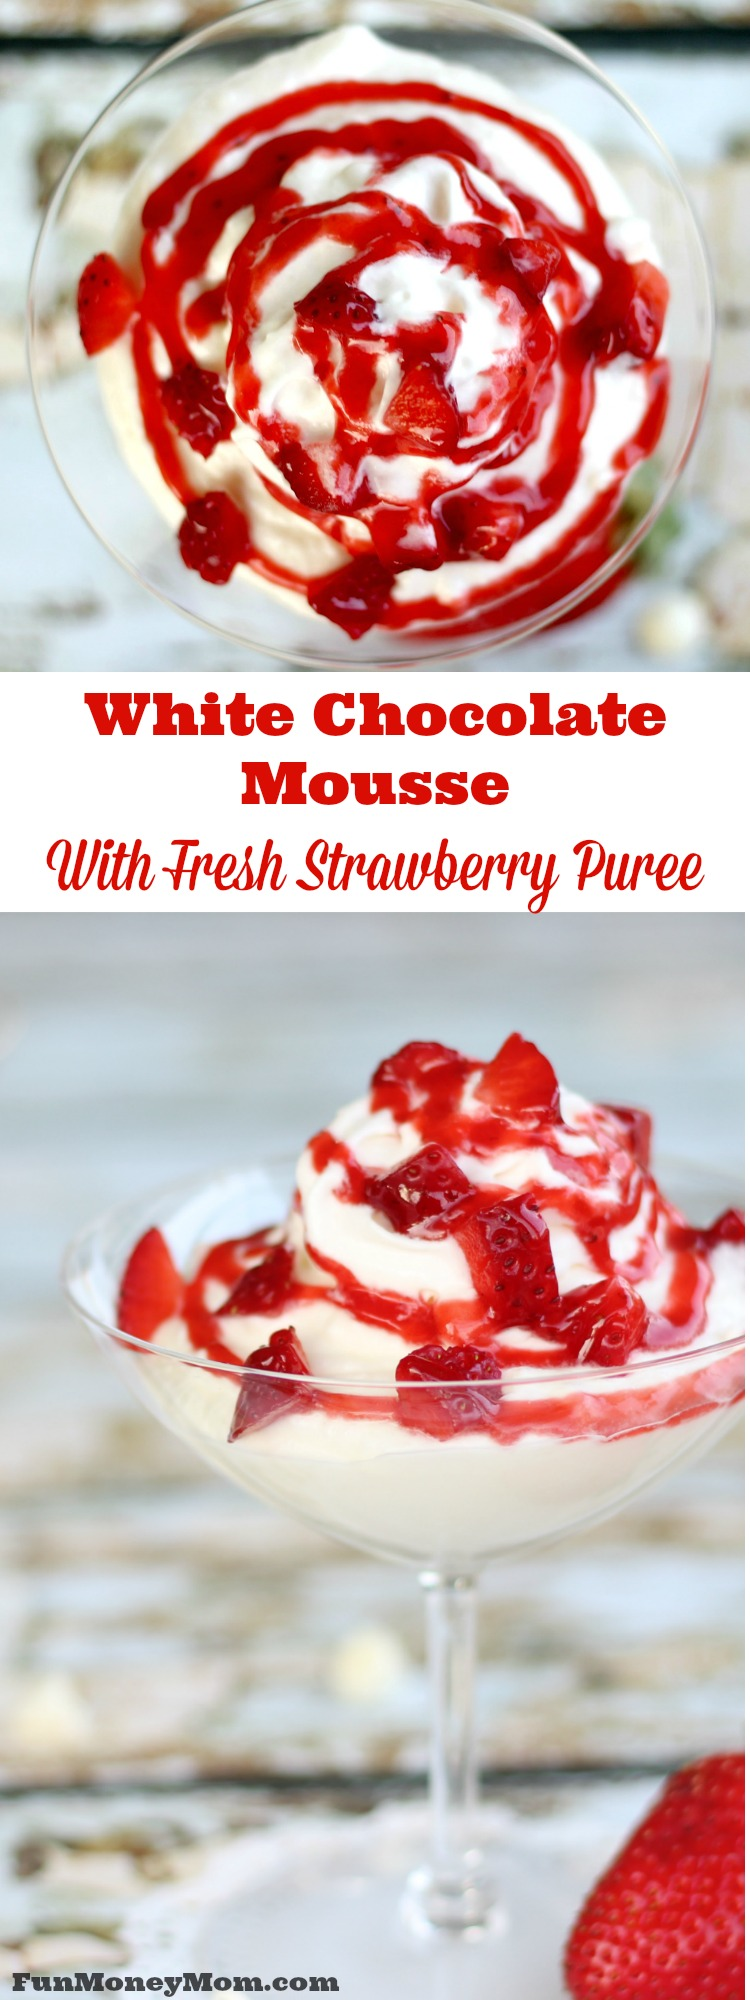 Want the best ever chocolate dessert? This mouthwatering white chocolate mousse with strawberry puree will be your new favorite treat!